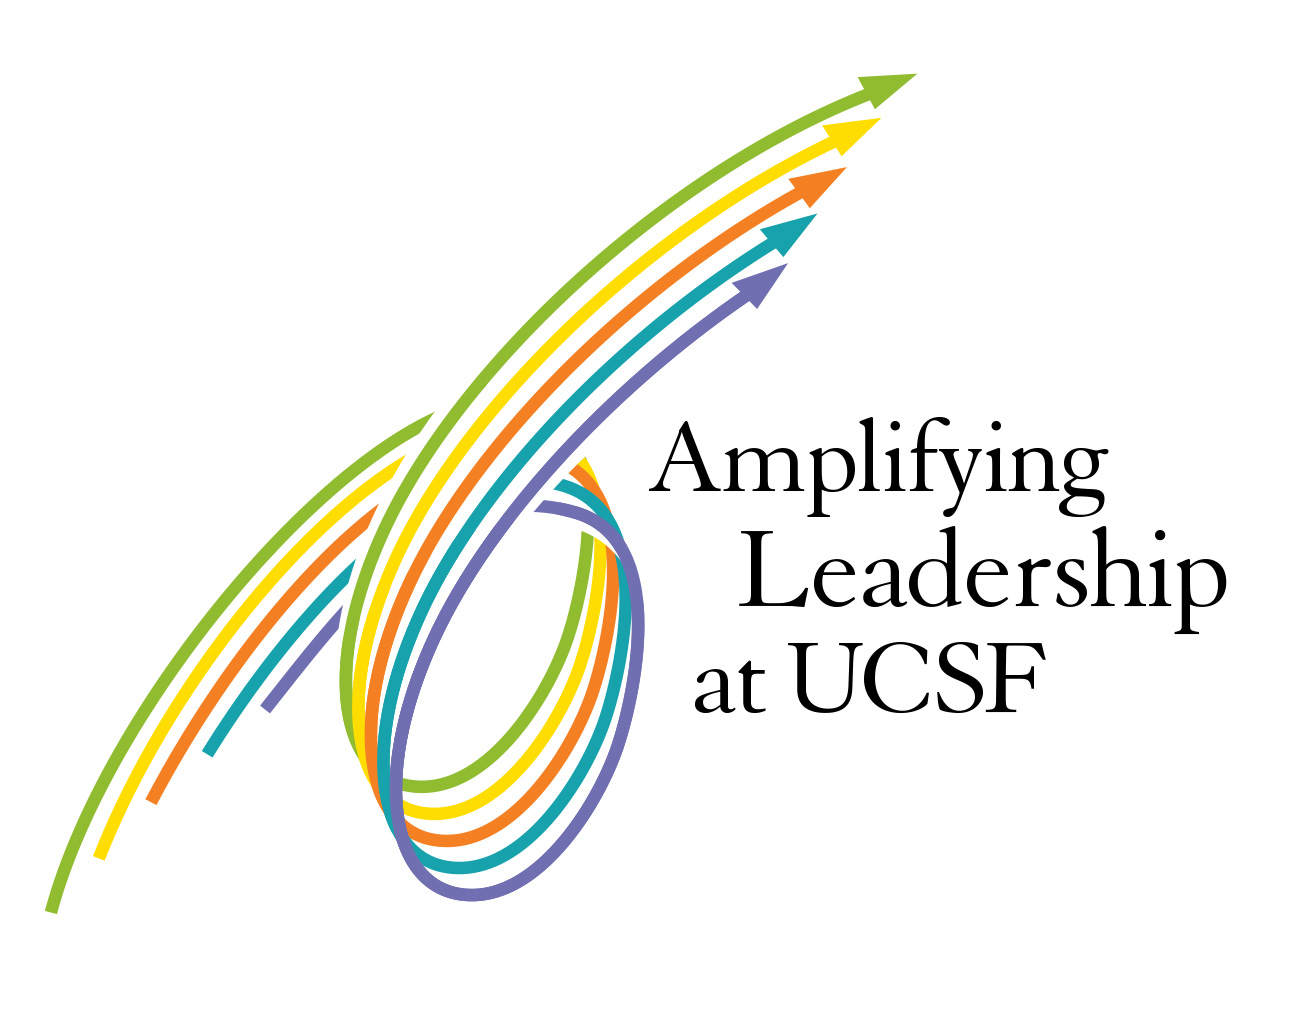 Amplifying Leadership at UCSF